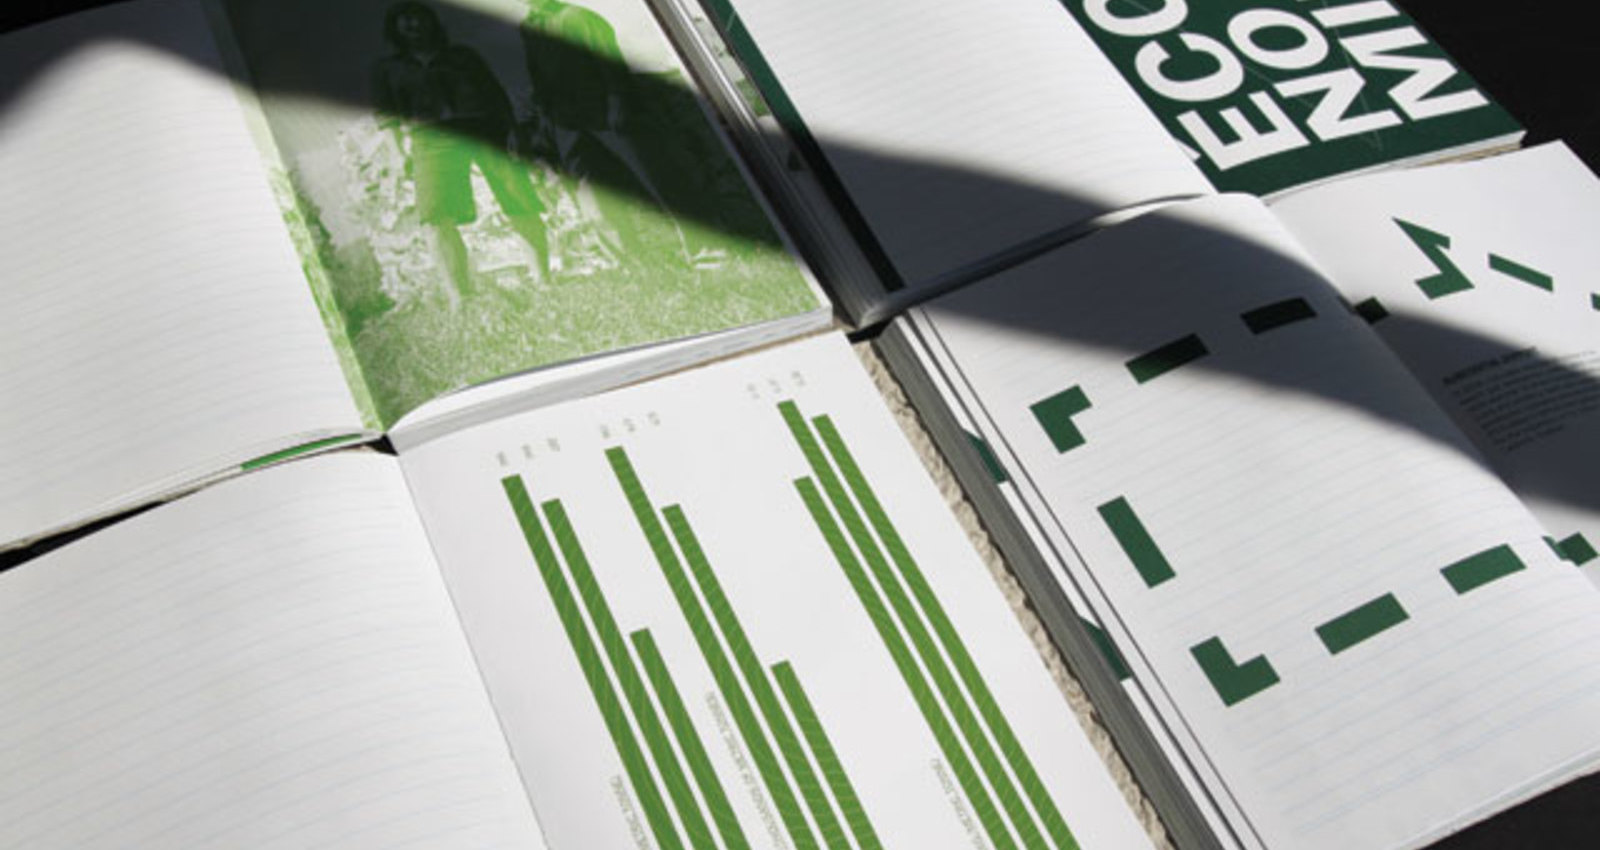 Cascades 2009 Annual Report on Sustainable Development